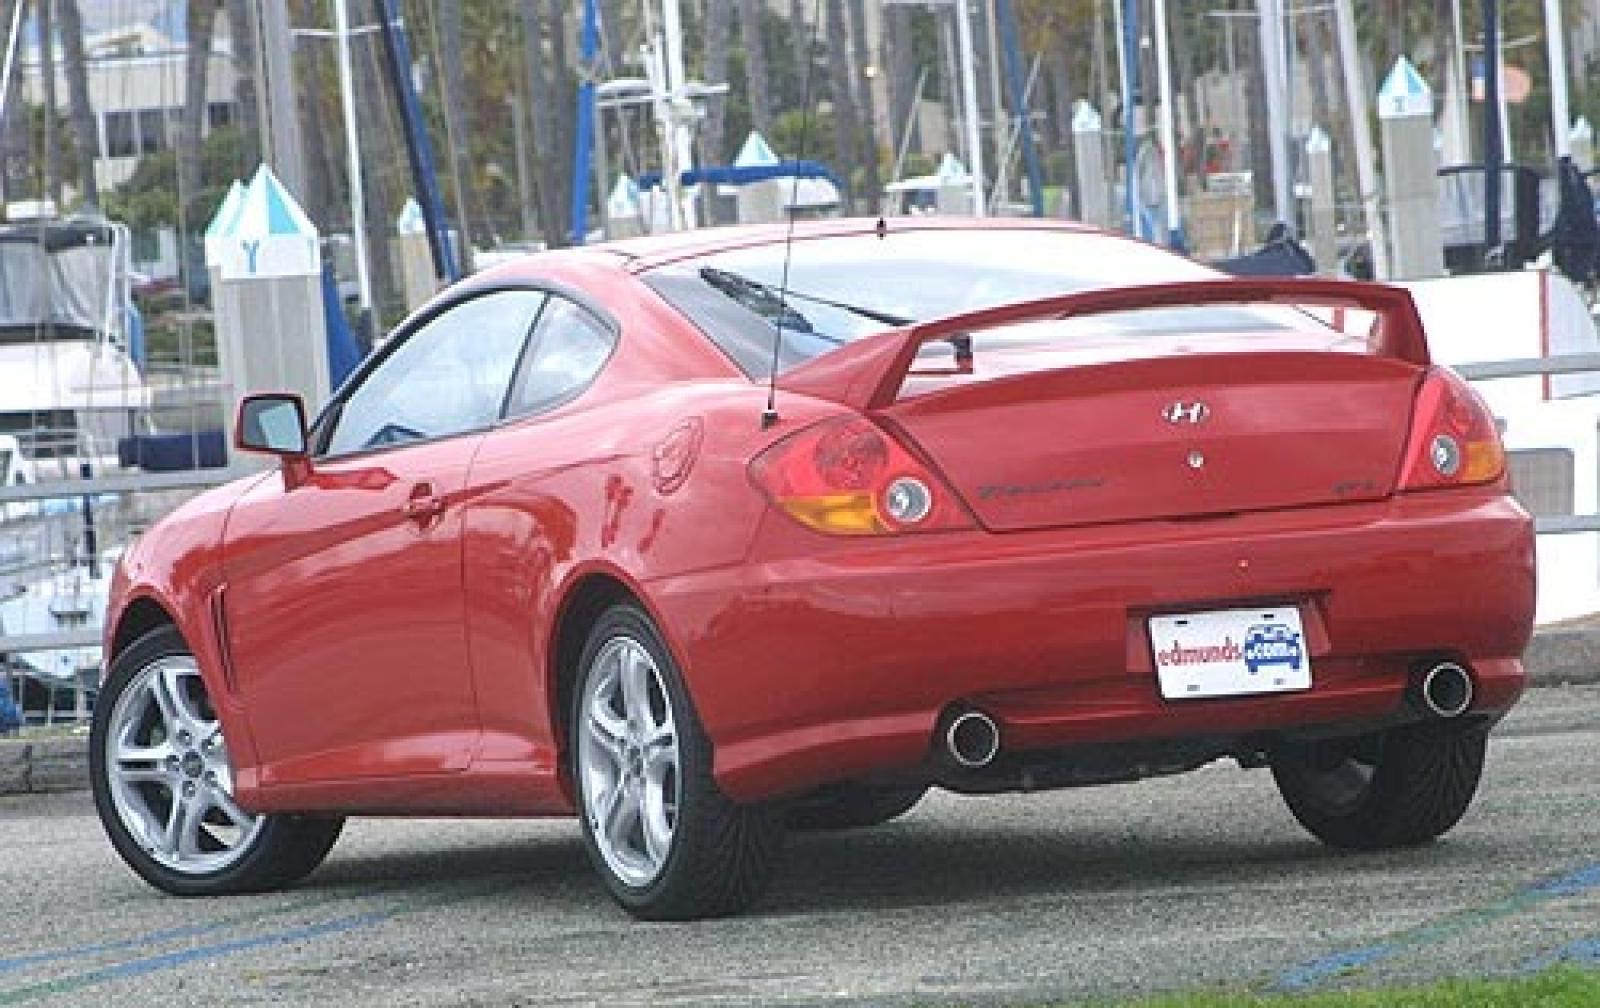 2004 hyundai tiburon information and photos zombiedrive. Black Bedroom Furniture Sets. Home Design Ideas